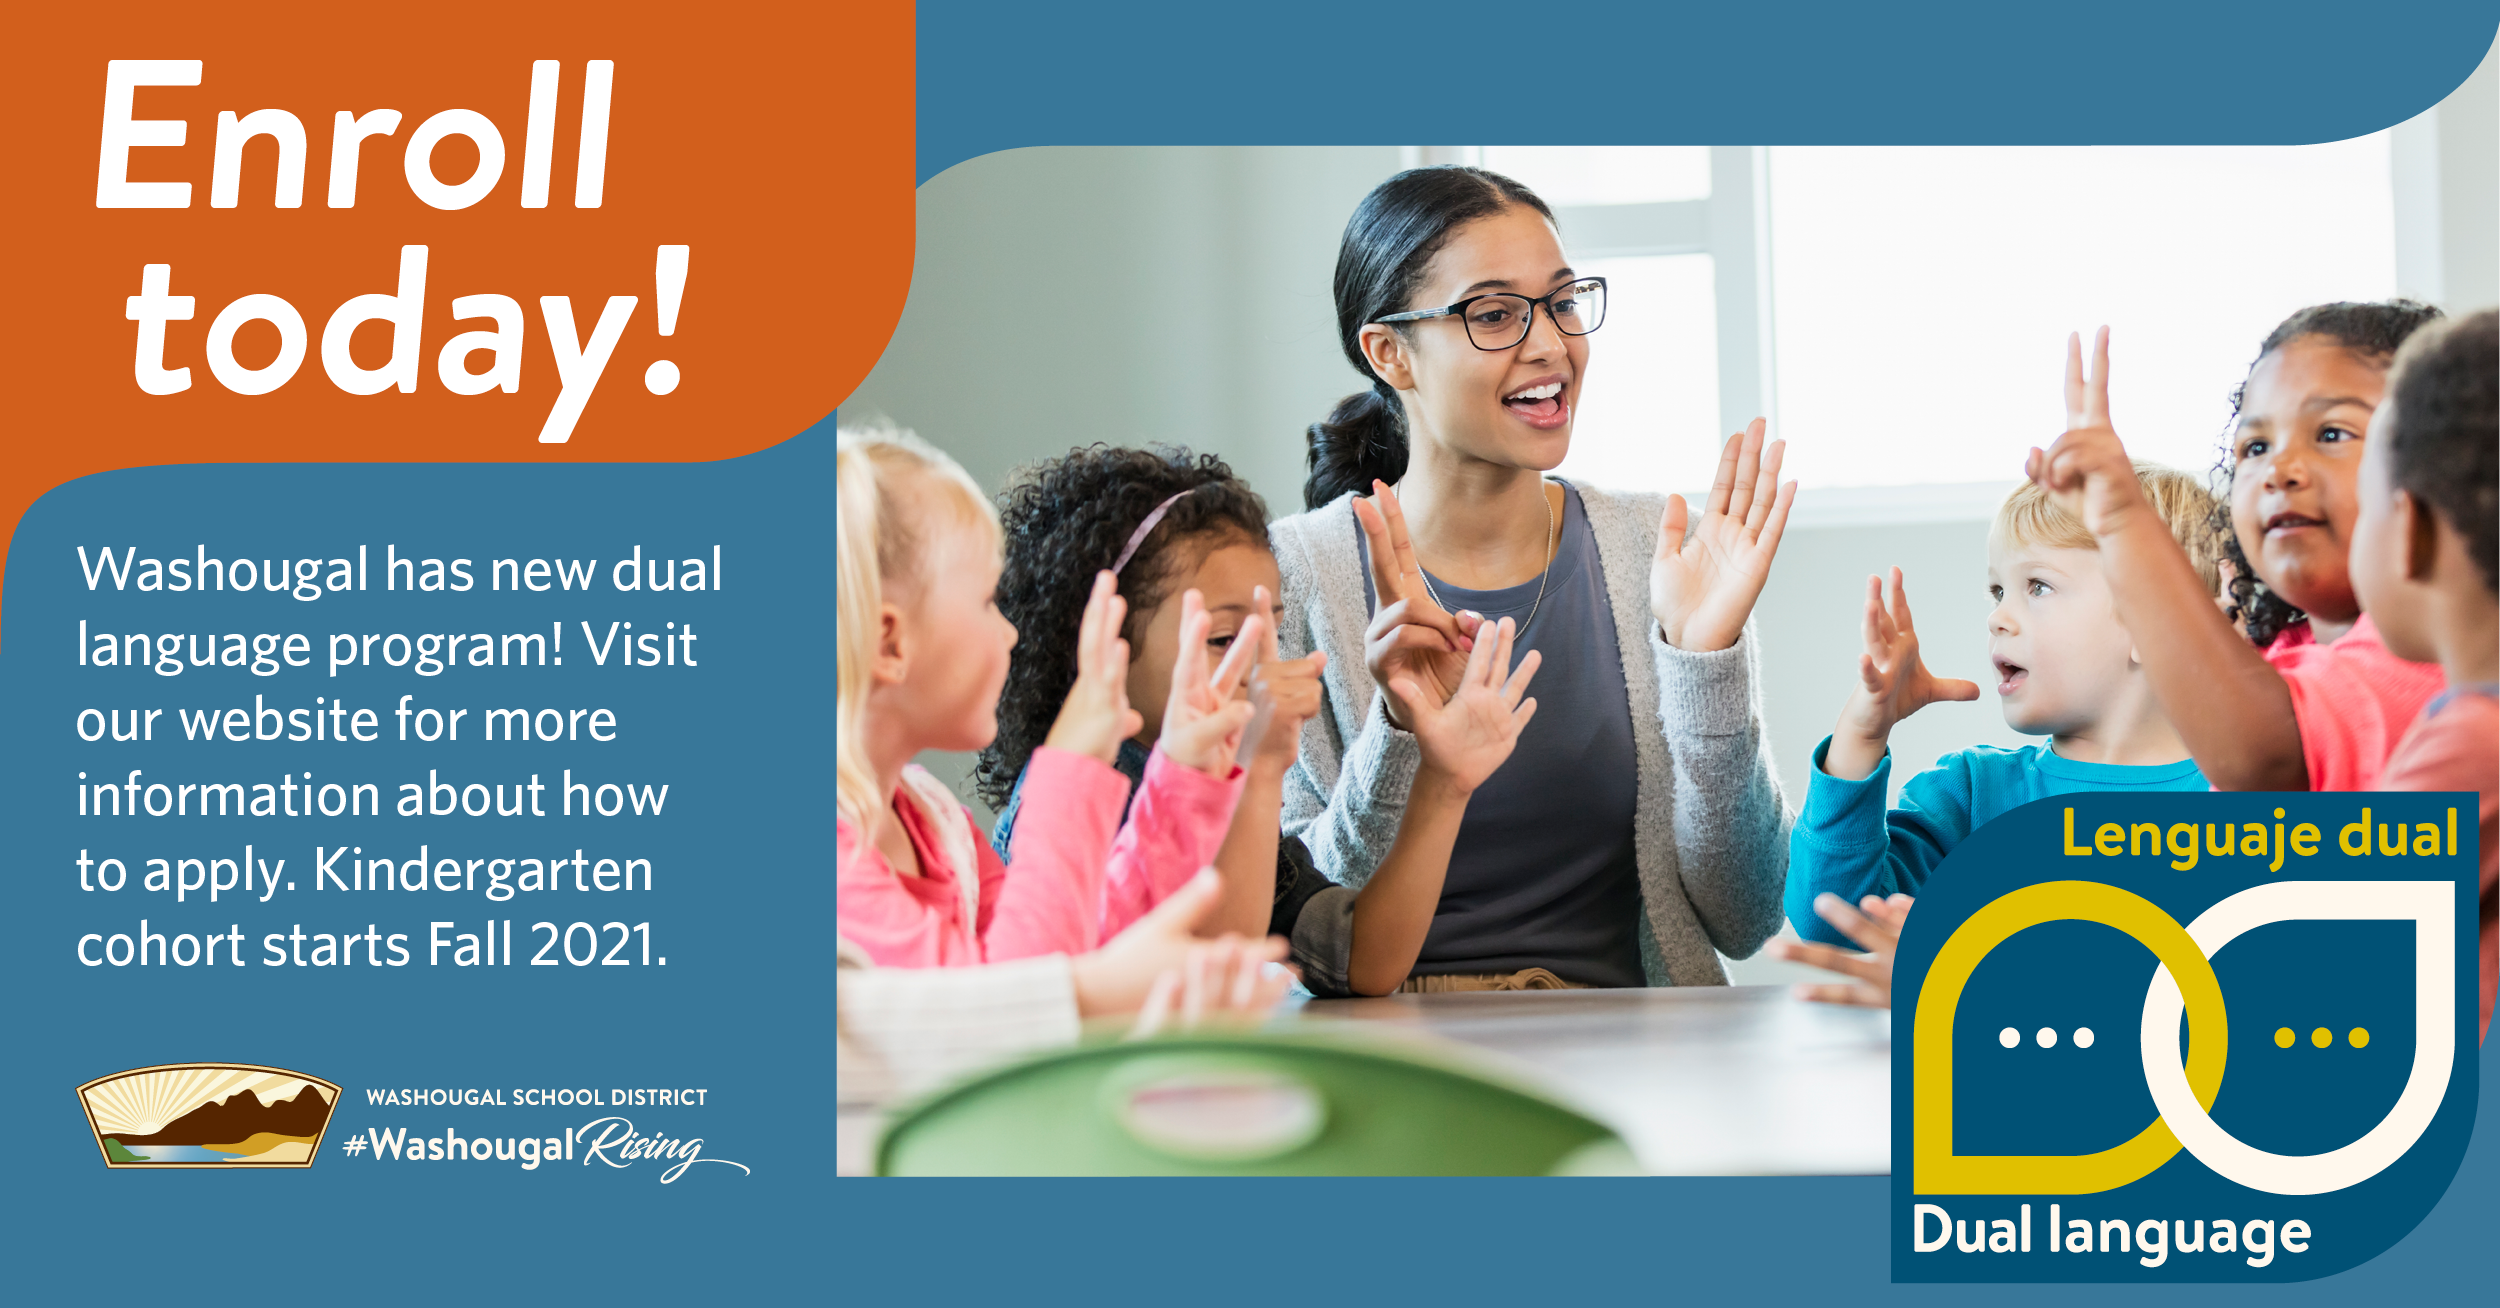 Enroll today, inscribase su hijo hoy, Washougal School District has a new dual language program for 5 year olds. with district logo and dual language logo, and photo of teacher seated at table with several students.